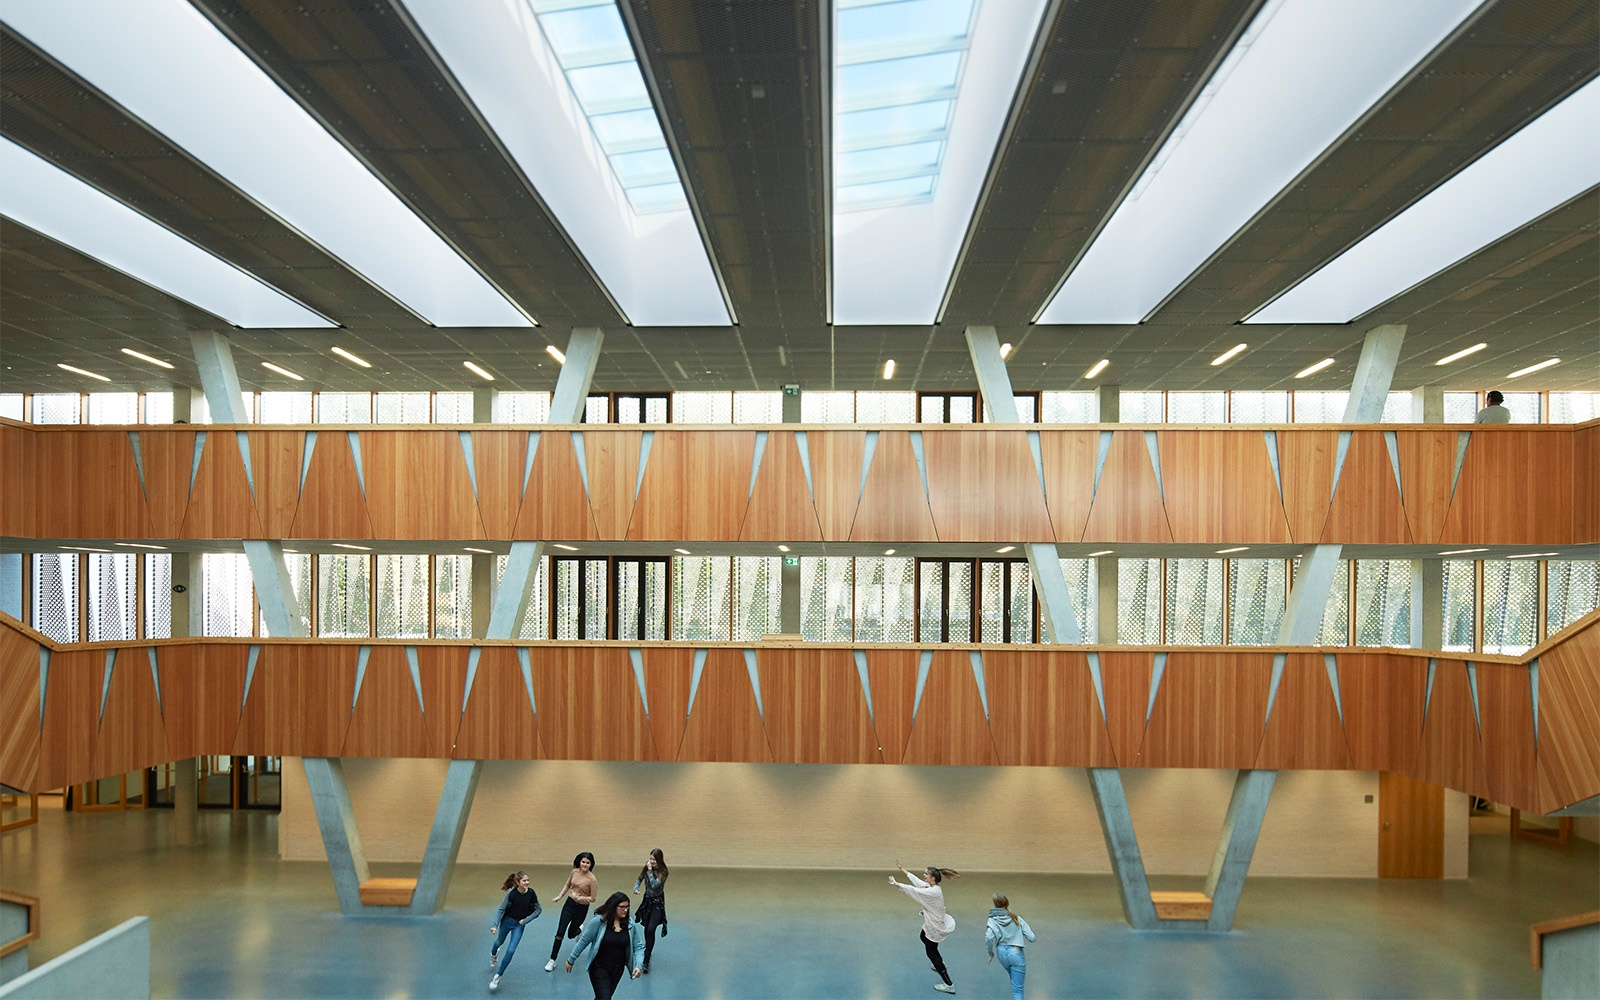 A new teaching model achieved through modern architecture